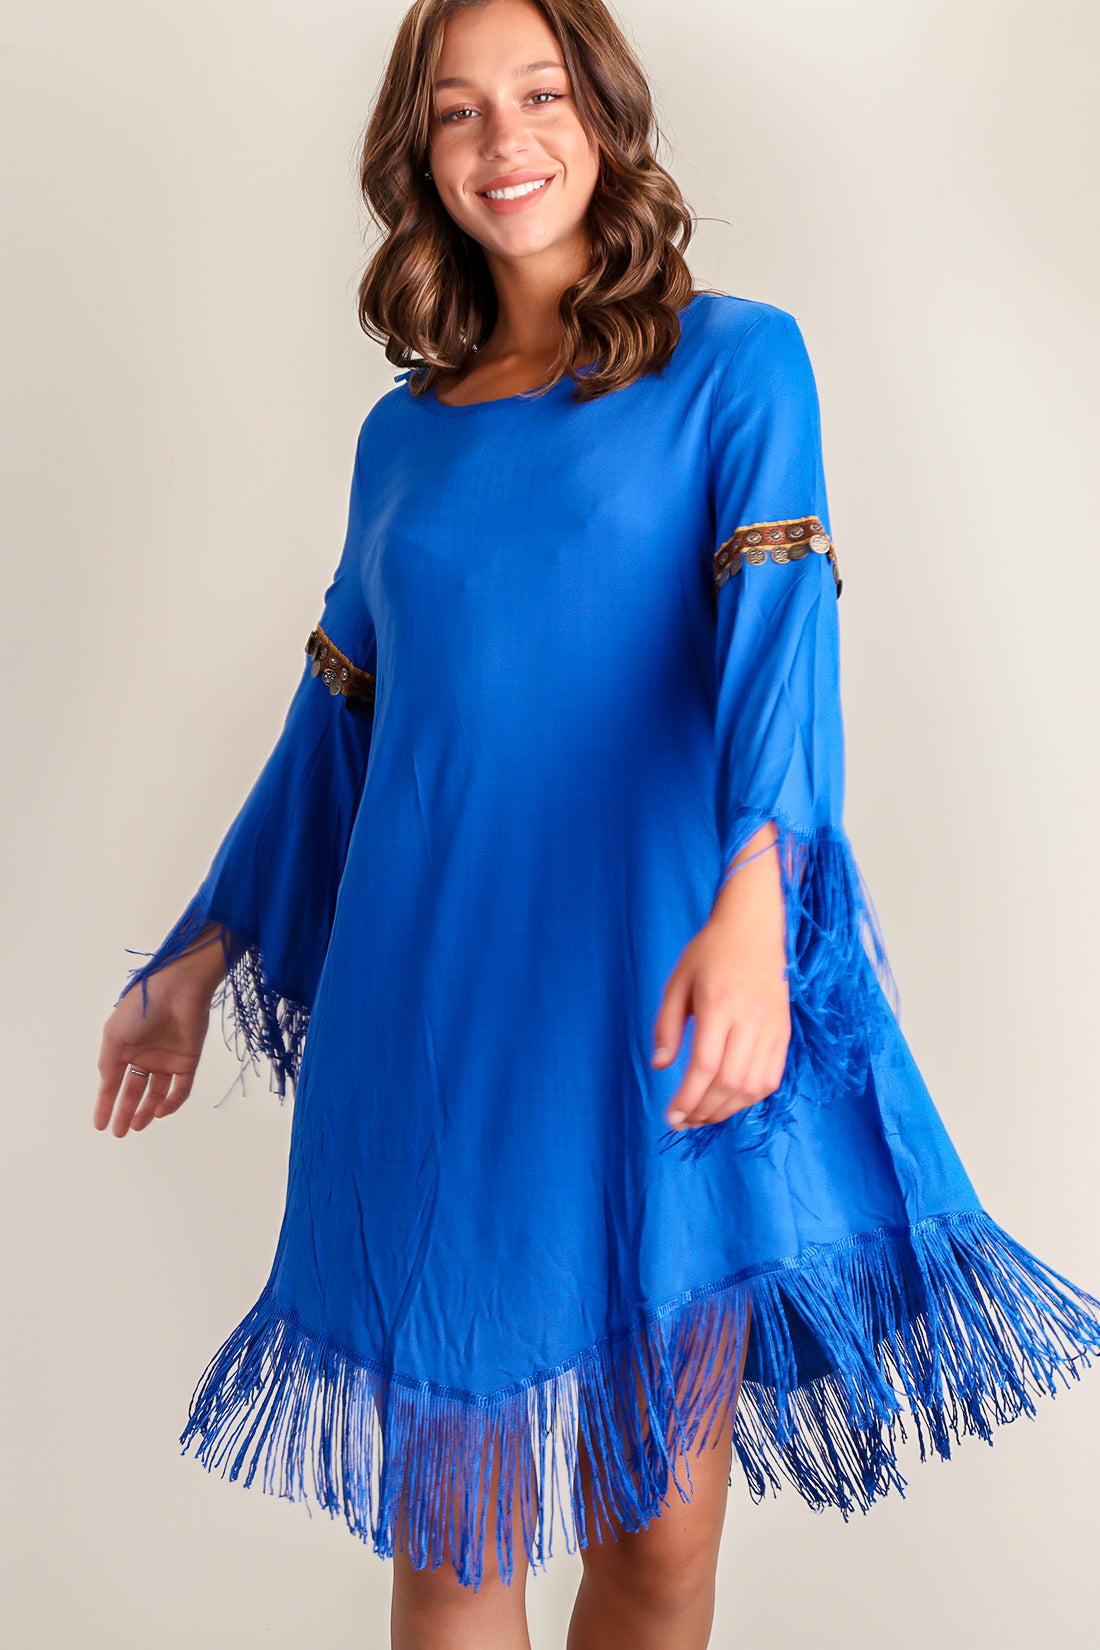 Royal Embellished Fringe Dress